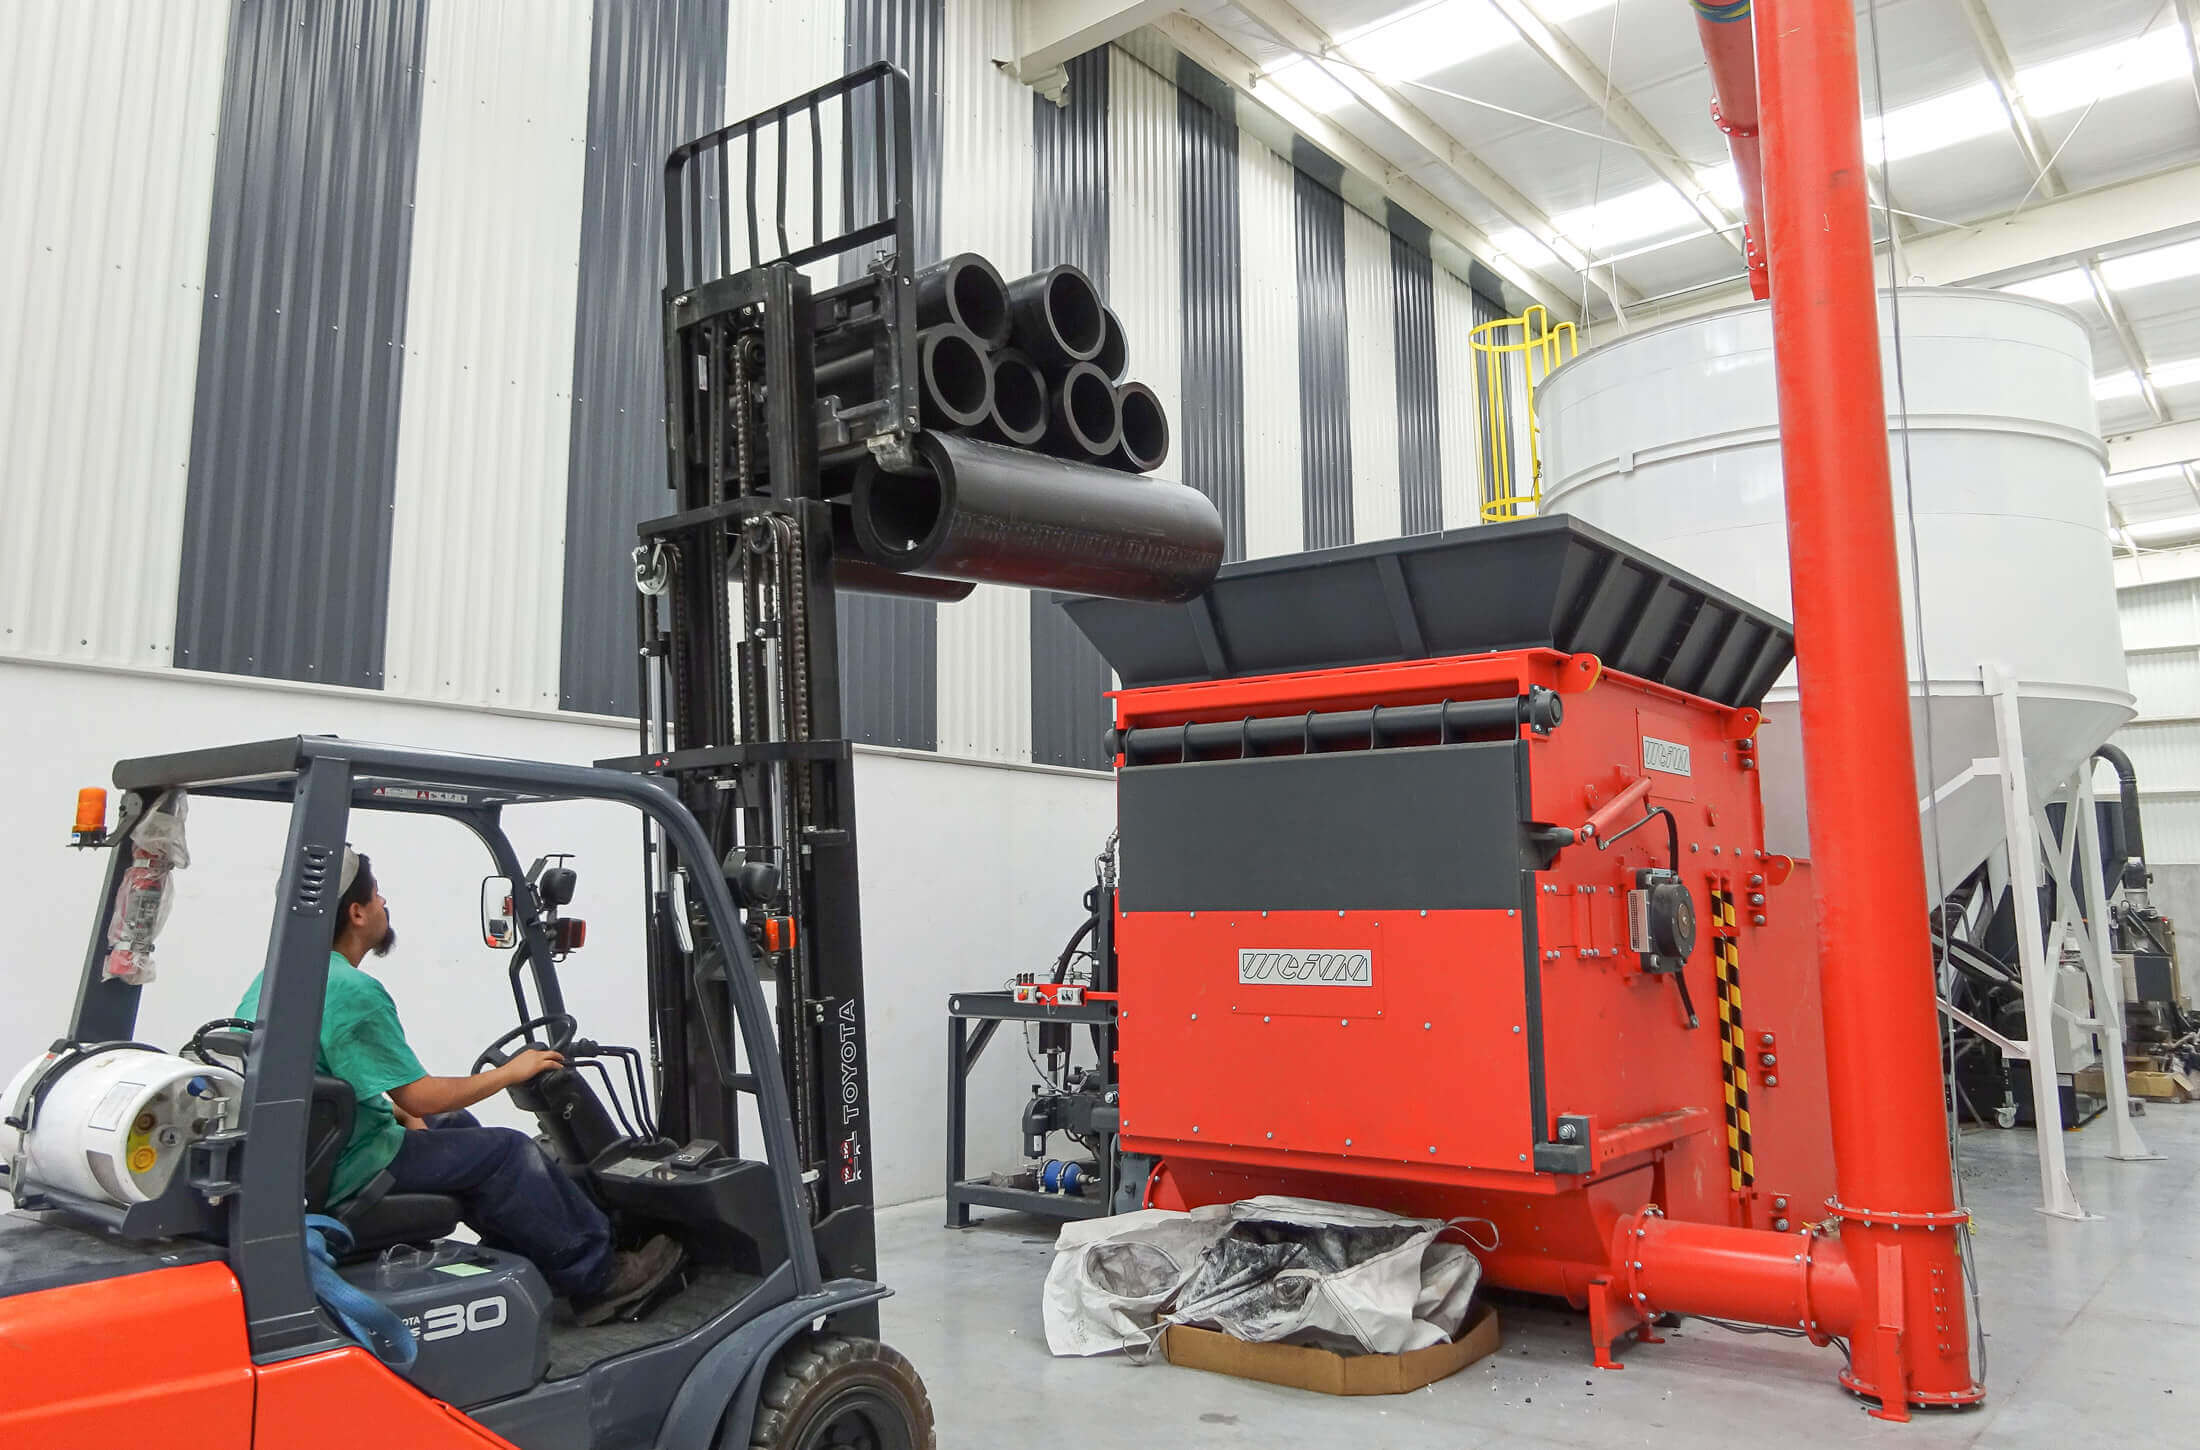 Wheel loader puts HDPE pipe cuttings into the hopper of the WEIMA shredder for recycling